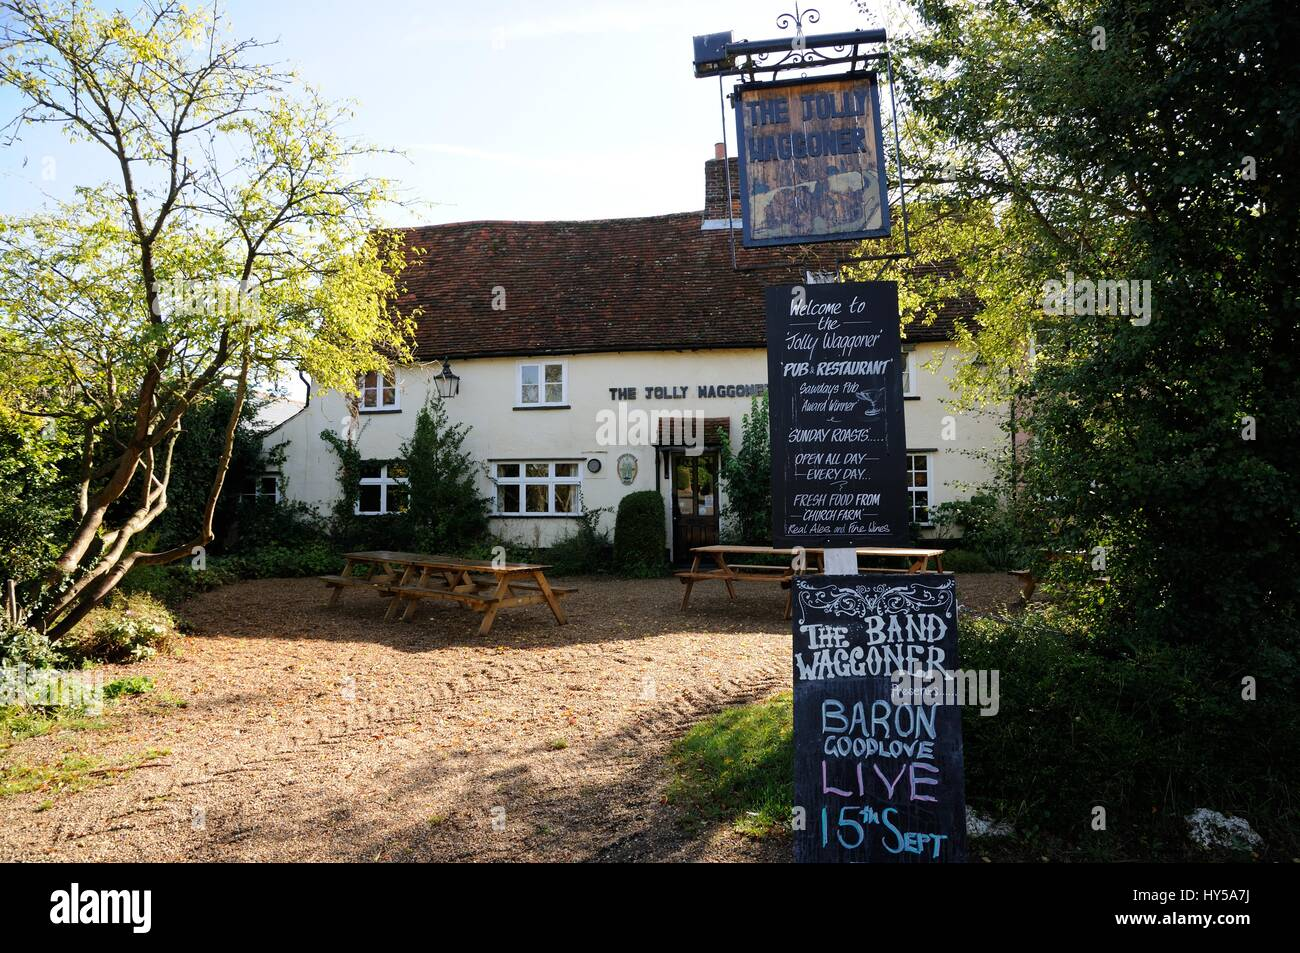 The Jolly Waggoner, Ardeley, Hertfordshire, is an ancient inn which provides 'Real Food' and 'Real Ale' to its customers. - Stock Image